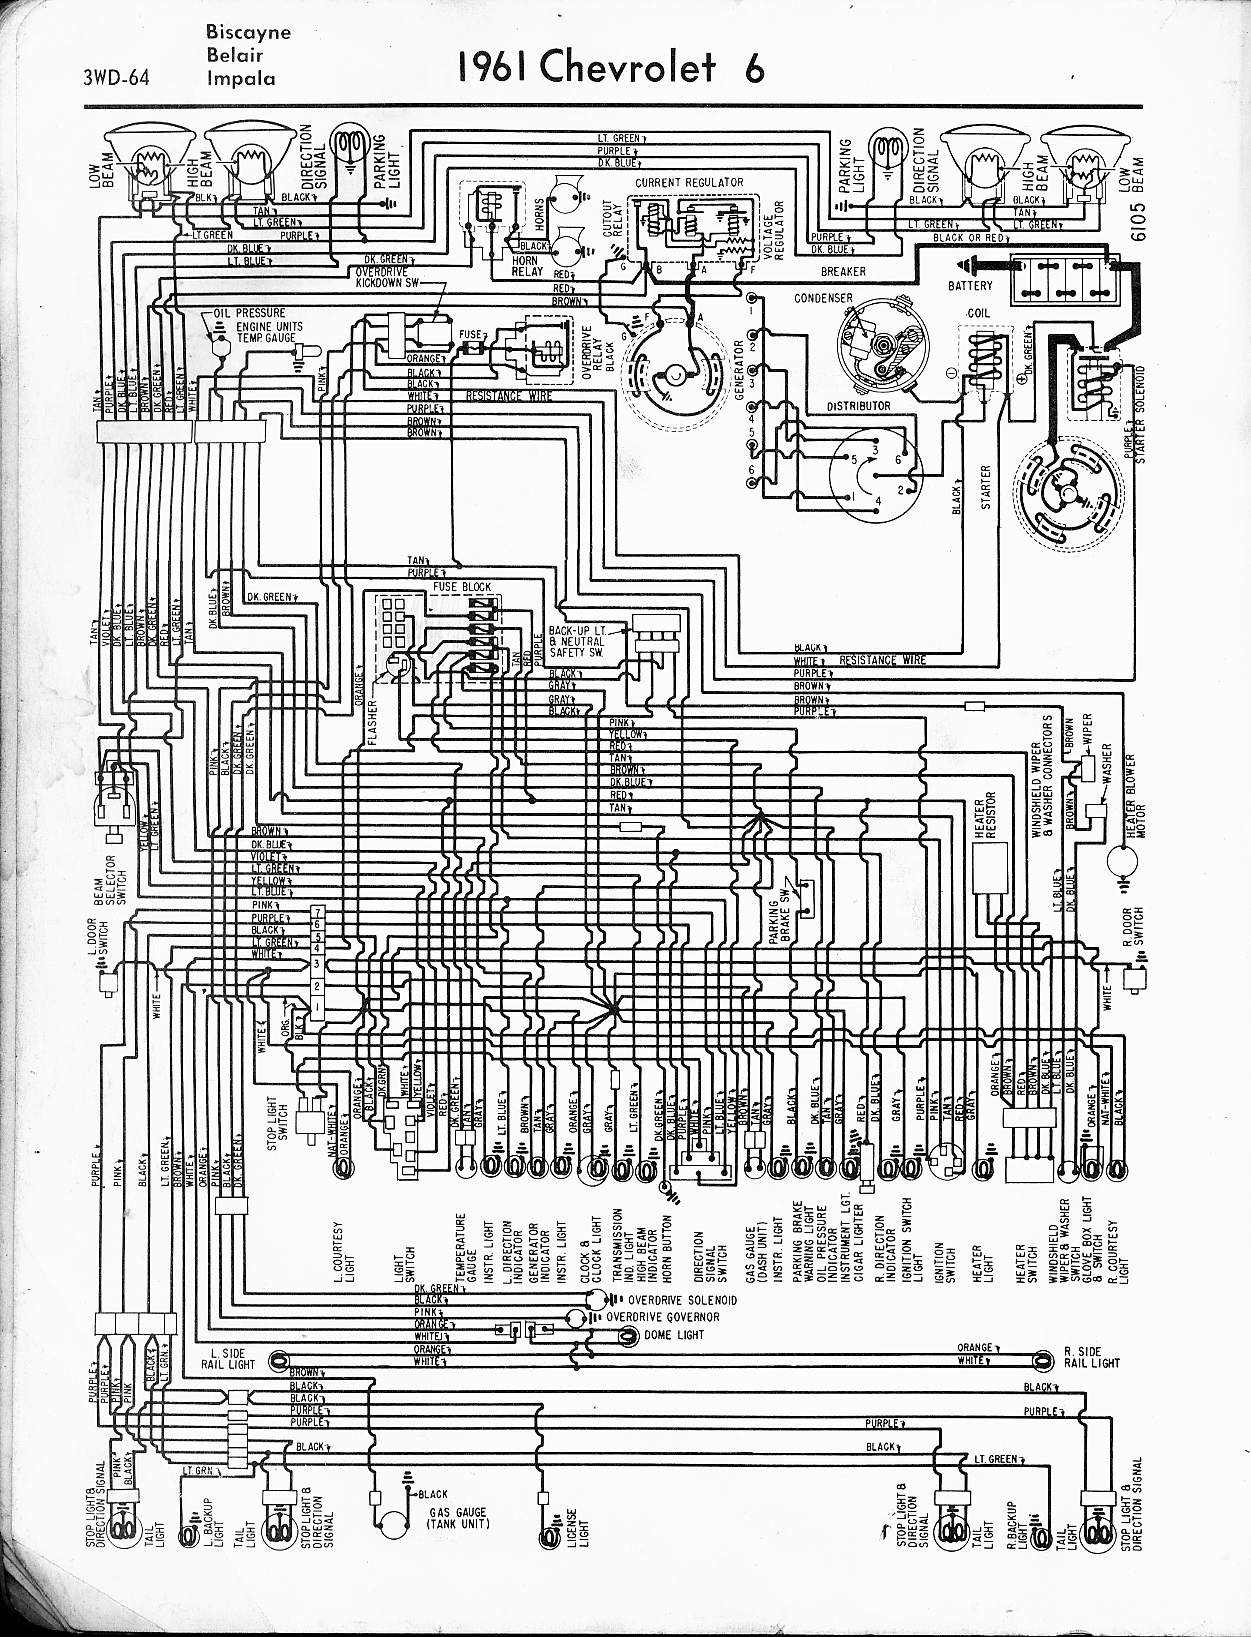 MWireChev61_3WD 064 57 65 chevy wiring diagrams 1960 Chevy Wiring Diagram at fashall.co